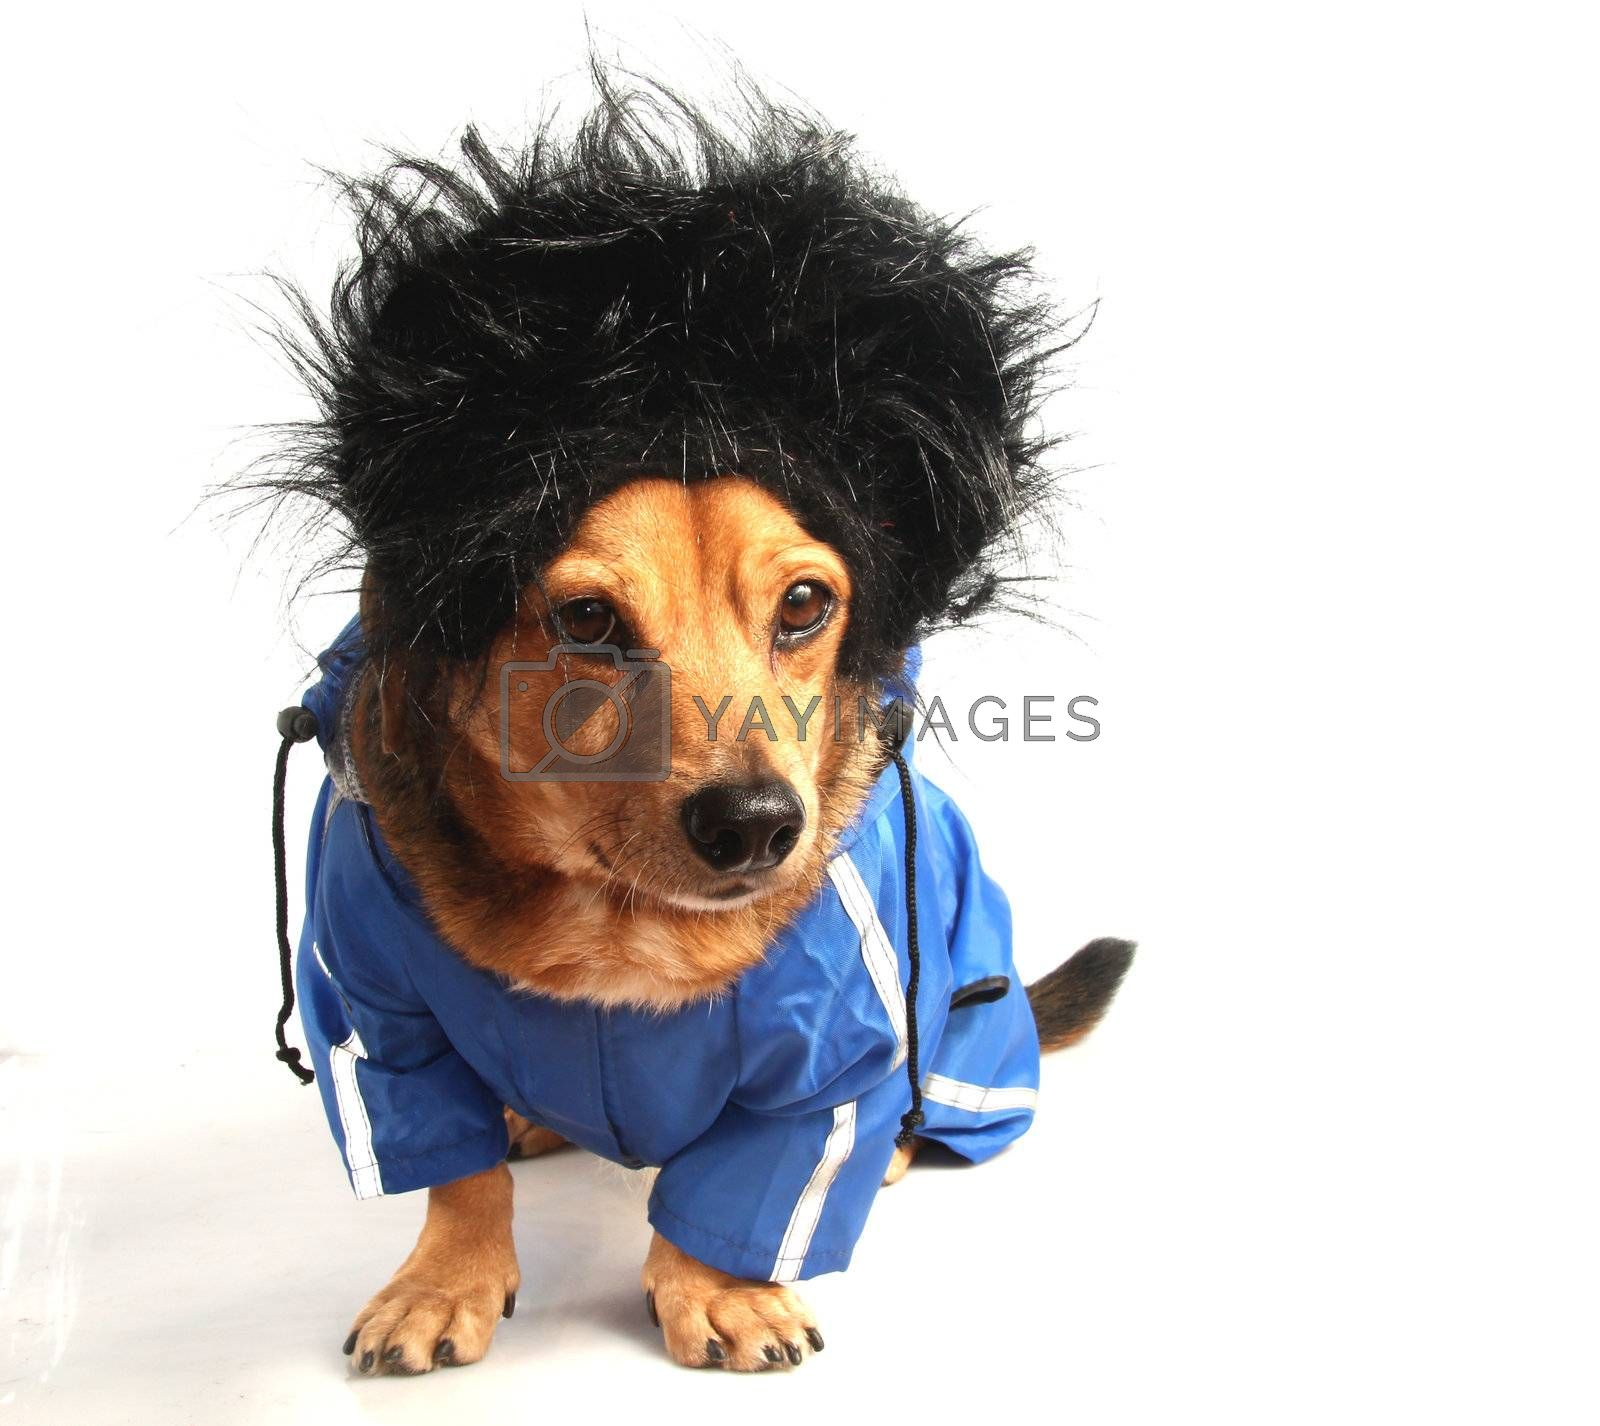 a little dog with the hair black in the storm